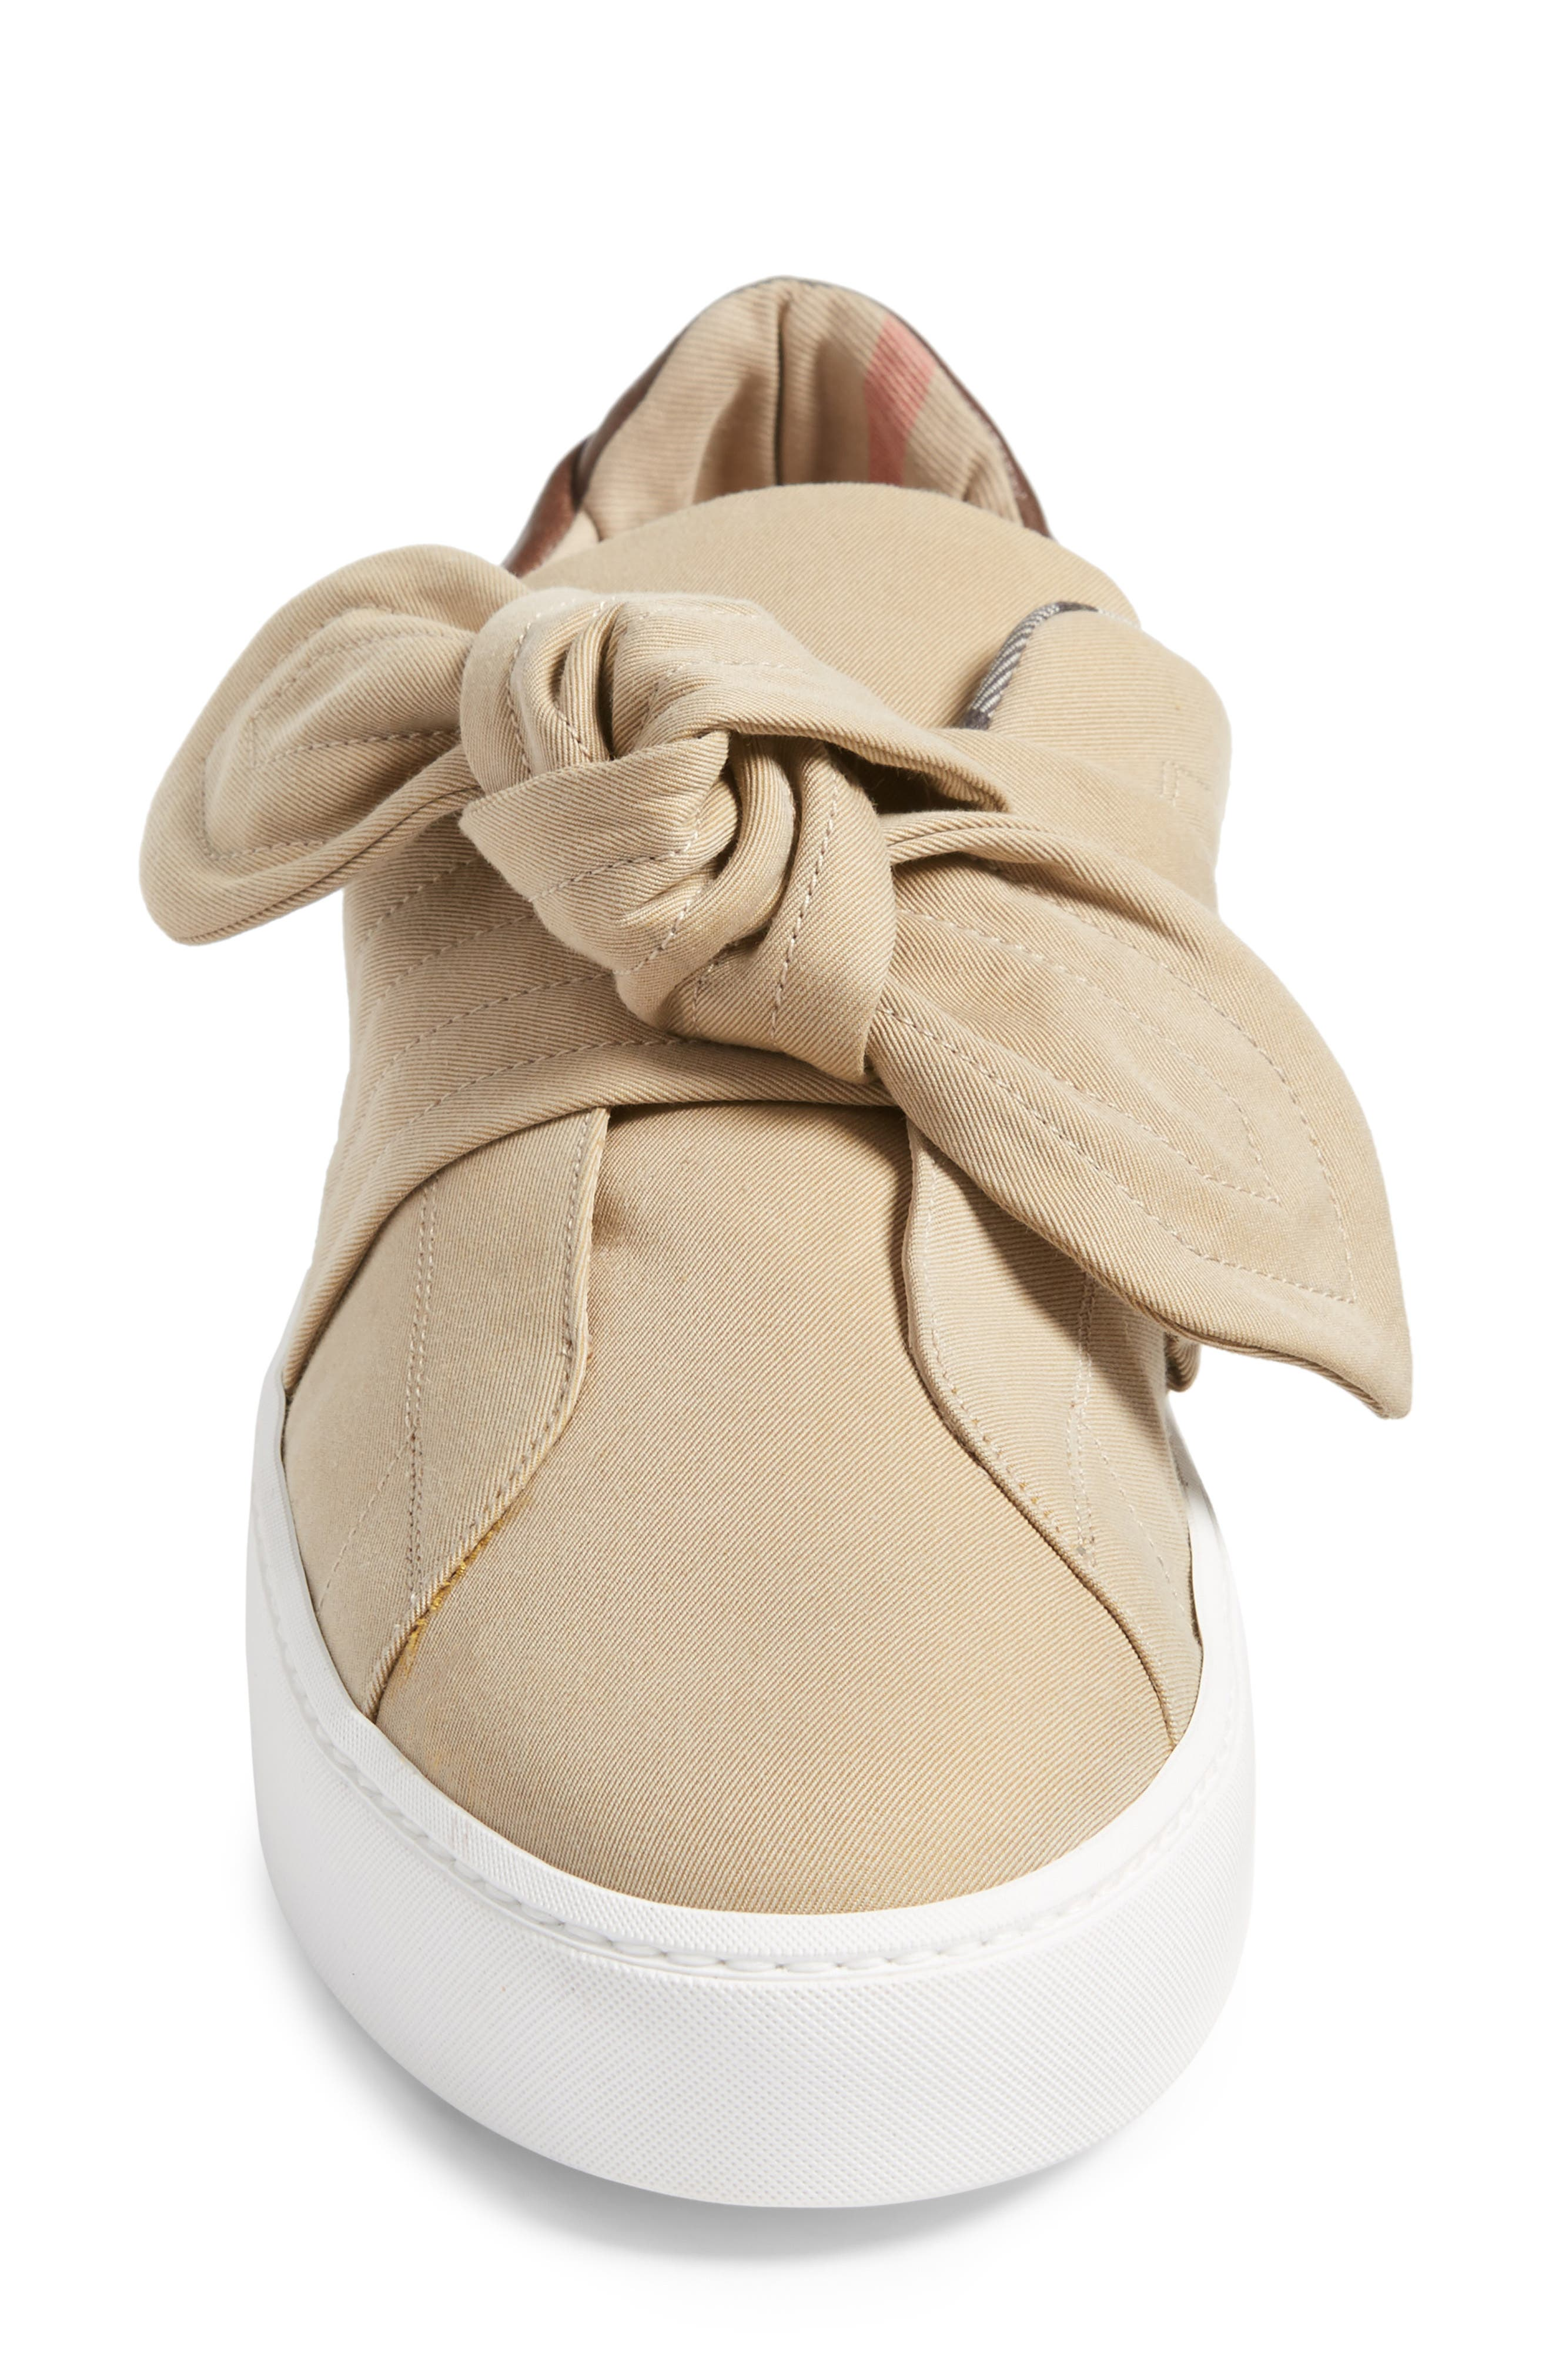 Alternate Image 4  - Burberry Knot Sneaker (Women)